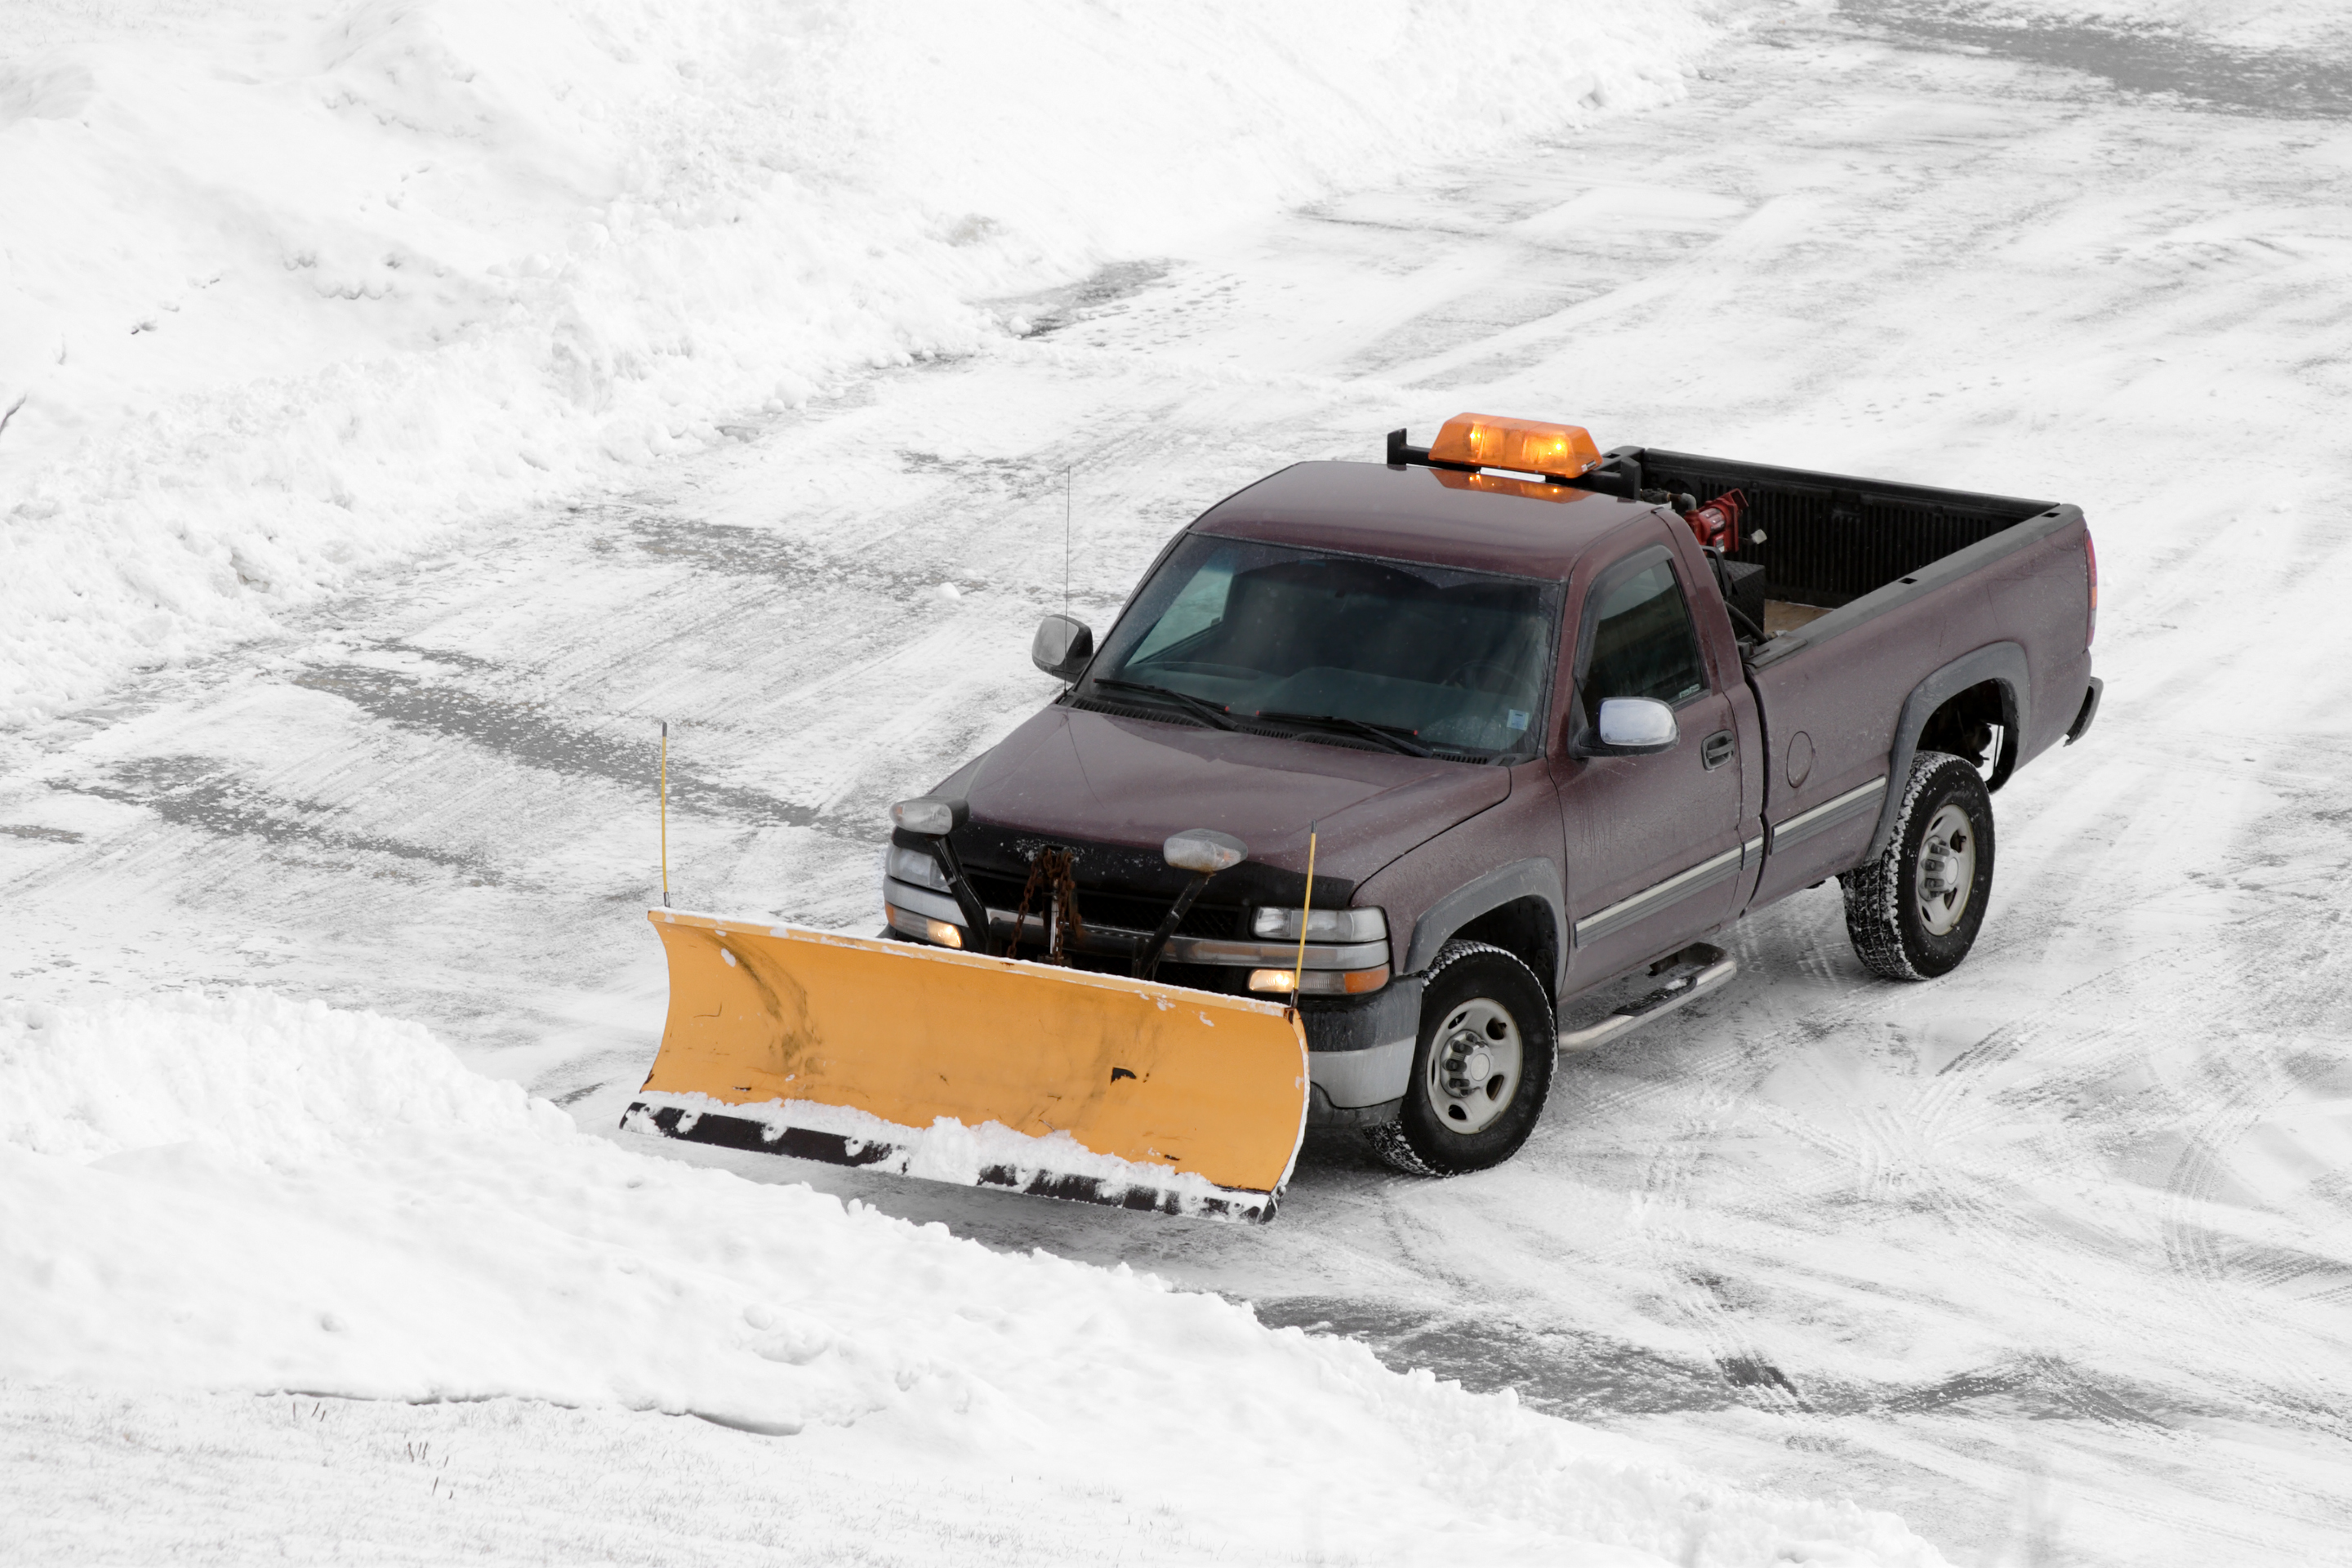 Chcicago's best snow plowing equipment